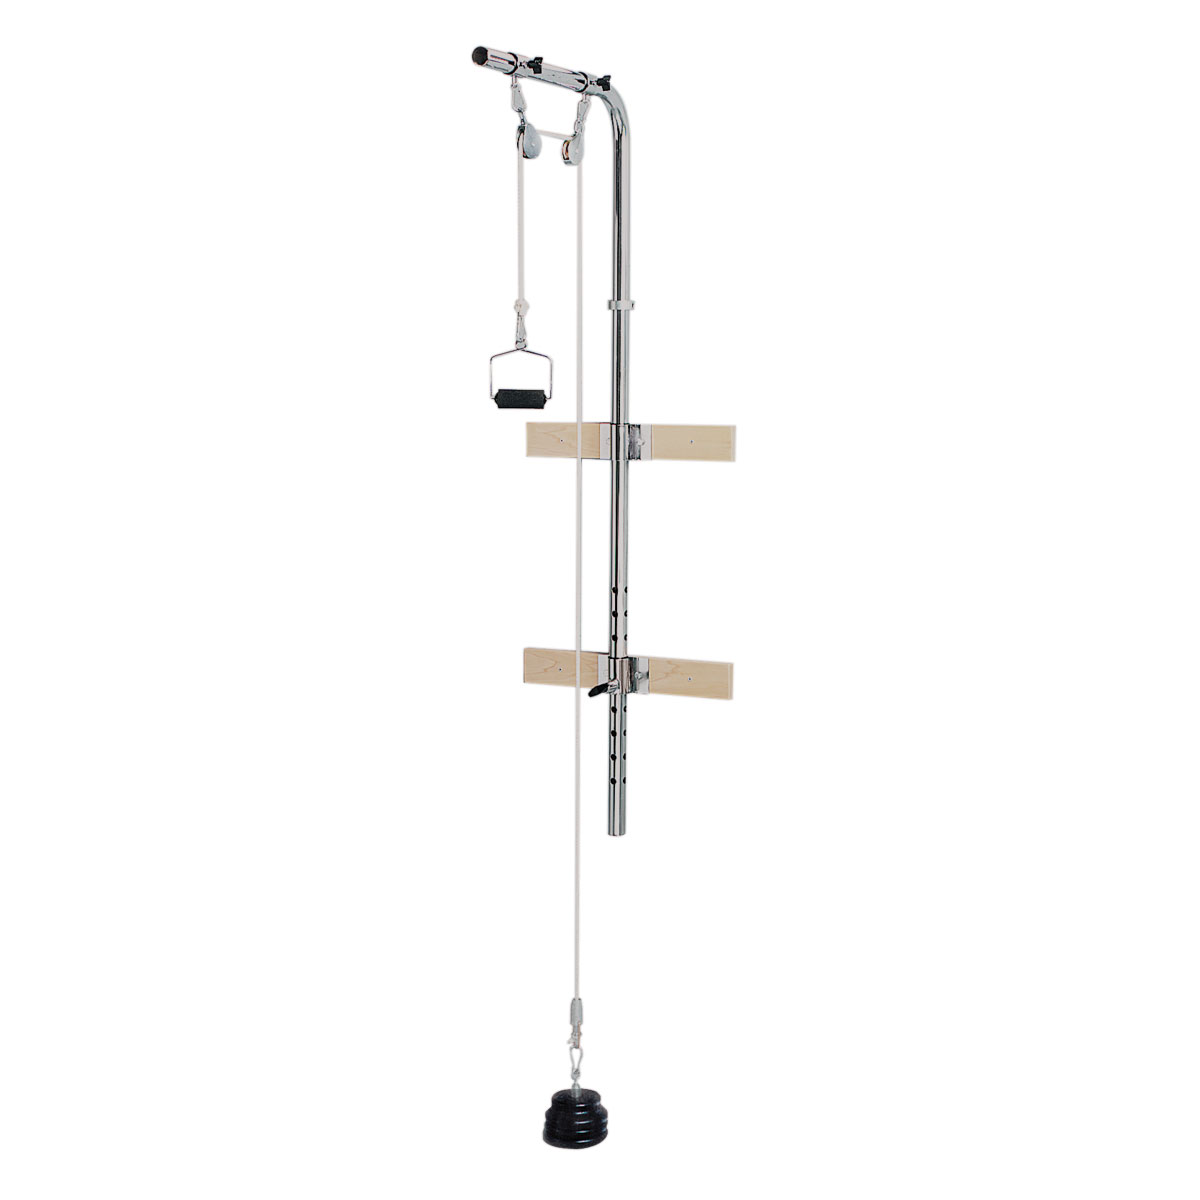 Wall Mounted Weight Pulley System Overhead Wall Pulley System